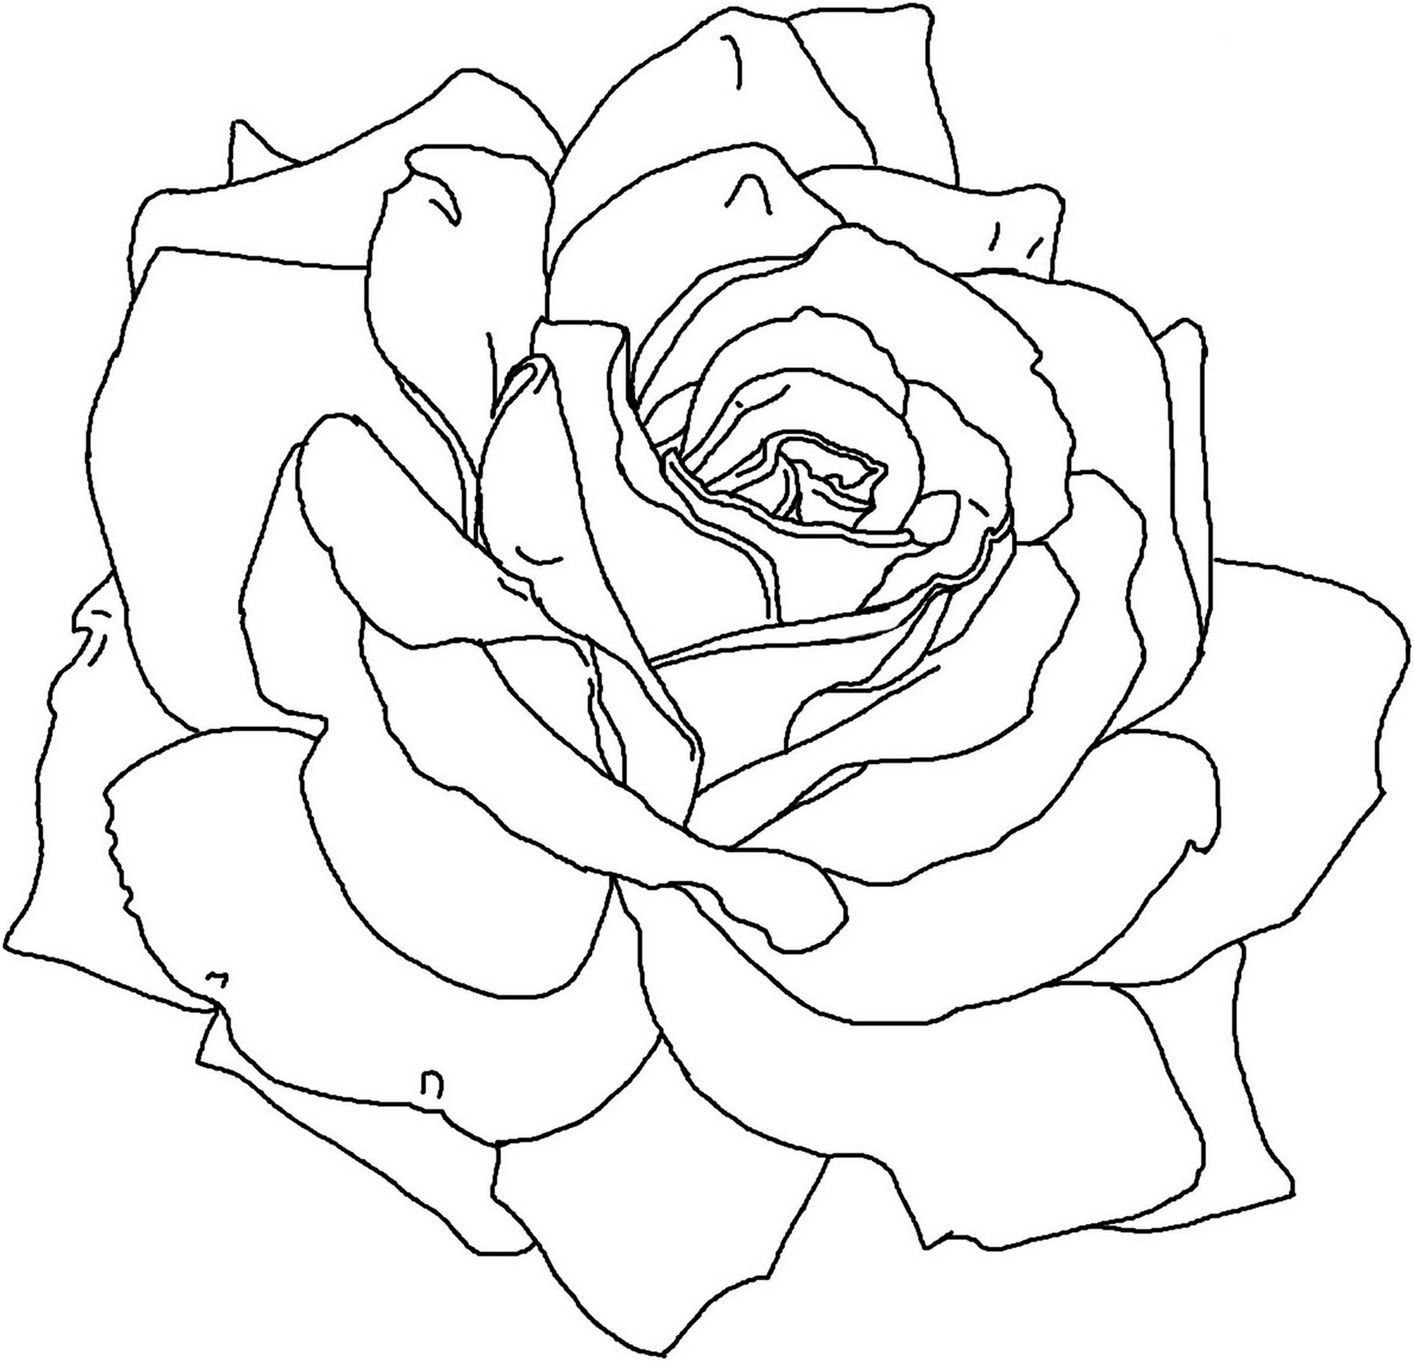 coloring page roses free | Coloring Board | Pinterest | Free